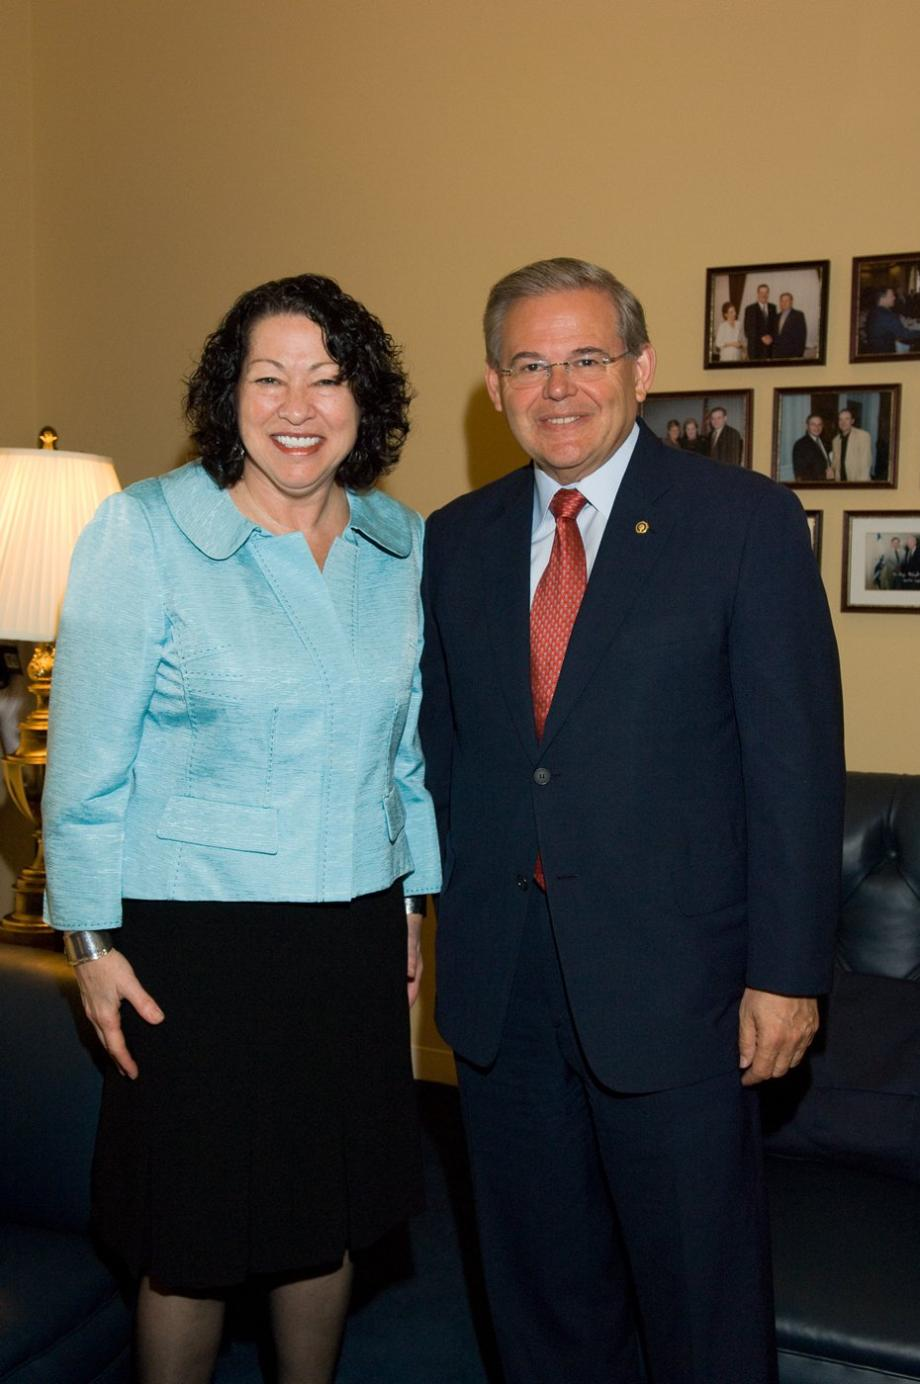 Meeting with Judge Sonia Sotomayor on her nomination to the Supreme Court (Washington, DC)